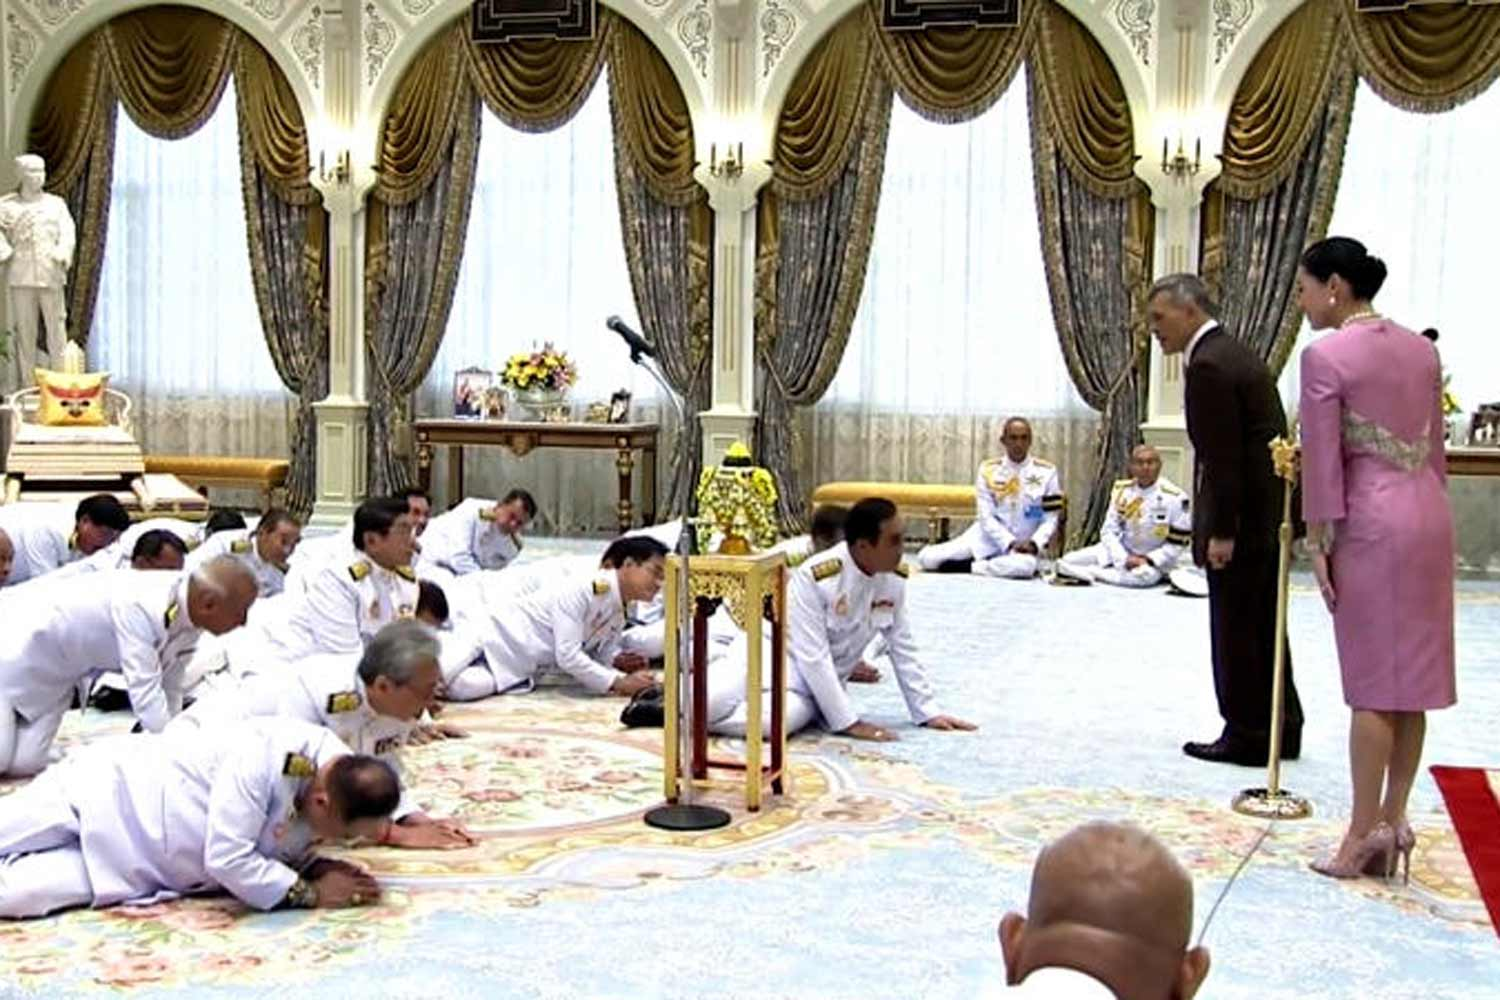 His Majesty the King gives an address to 36 cabinet ministers led by Prime Minister Prayut Chan-o-cha after they took an oath of office during the swearing-in ceremony at the Ambara Villa in the Dusit Palace on July 16. His Majesty was accompanied by Her Majesty the Queen. (TV Pool screen capture)